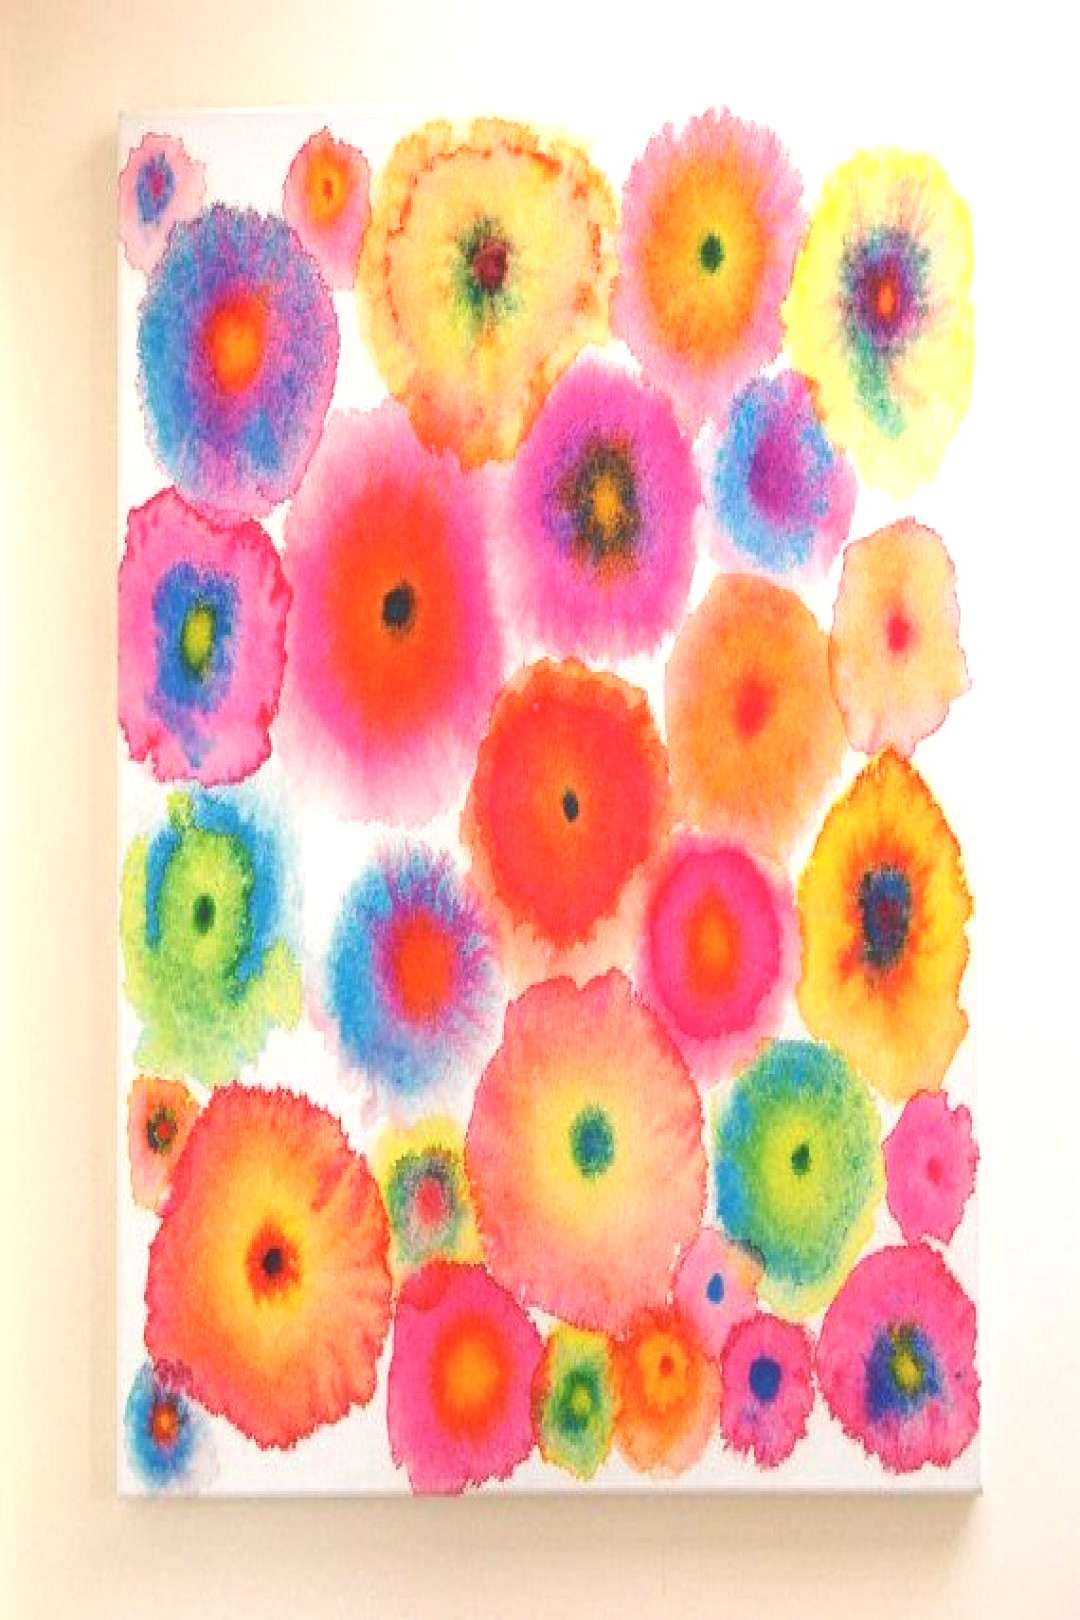 Pink Large Abstract Print Canvas - Circles - Flowers - Colorful - Blooms 2 Pink - Ltd Edition#abstr